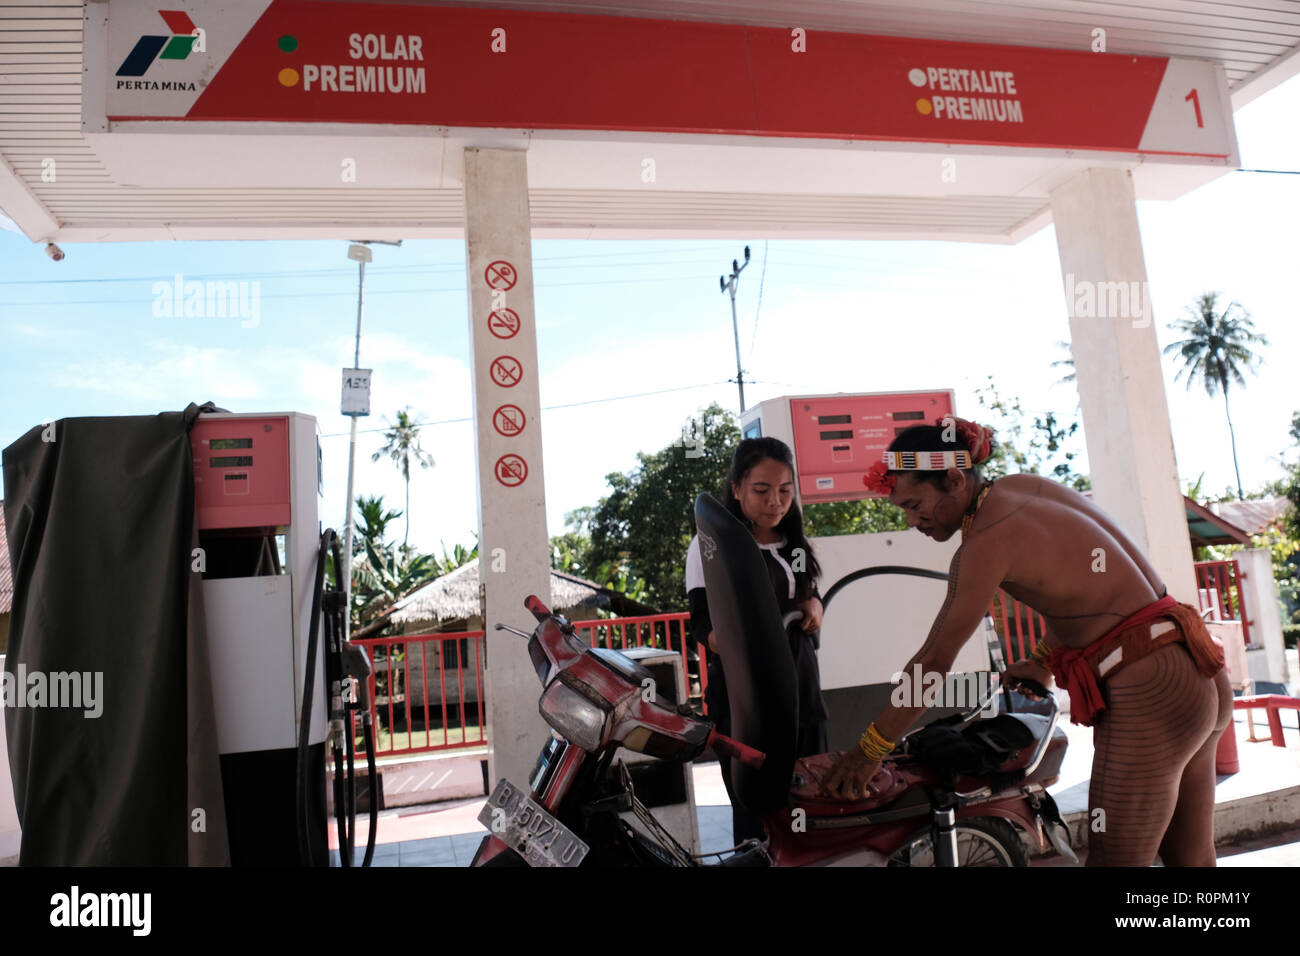 Mentawai Islands, West Sumatra, Indonesia. 3rd Nov, 2018. MENTAWAI ISLANDS, INDONESIA - NOVEMBER 07 : A Sikerei, a Mentawai shaman, is filling gasoline at the Pertamina fuel oil station on Siberut Island on November 03, 2018 in Mentawai islands, West Sumatra Province, Indonesia. The Mentawai Islands have a unique culture because they still preserve shamans called Sikerei for treatment for their people. Sikerei is dressed in minimal clothing with various leaves and flowers on the Mentawai Islands. Credit: Sijori Images/ZUMA Wire/Alamy Live News - Stock Image